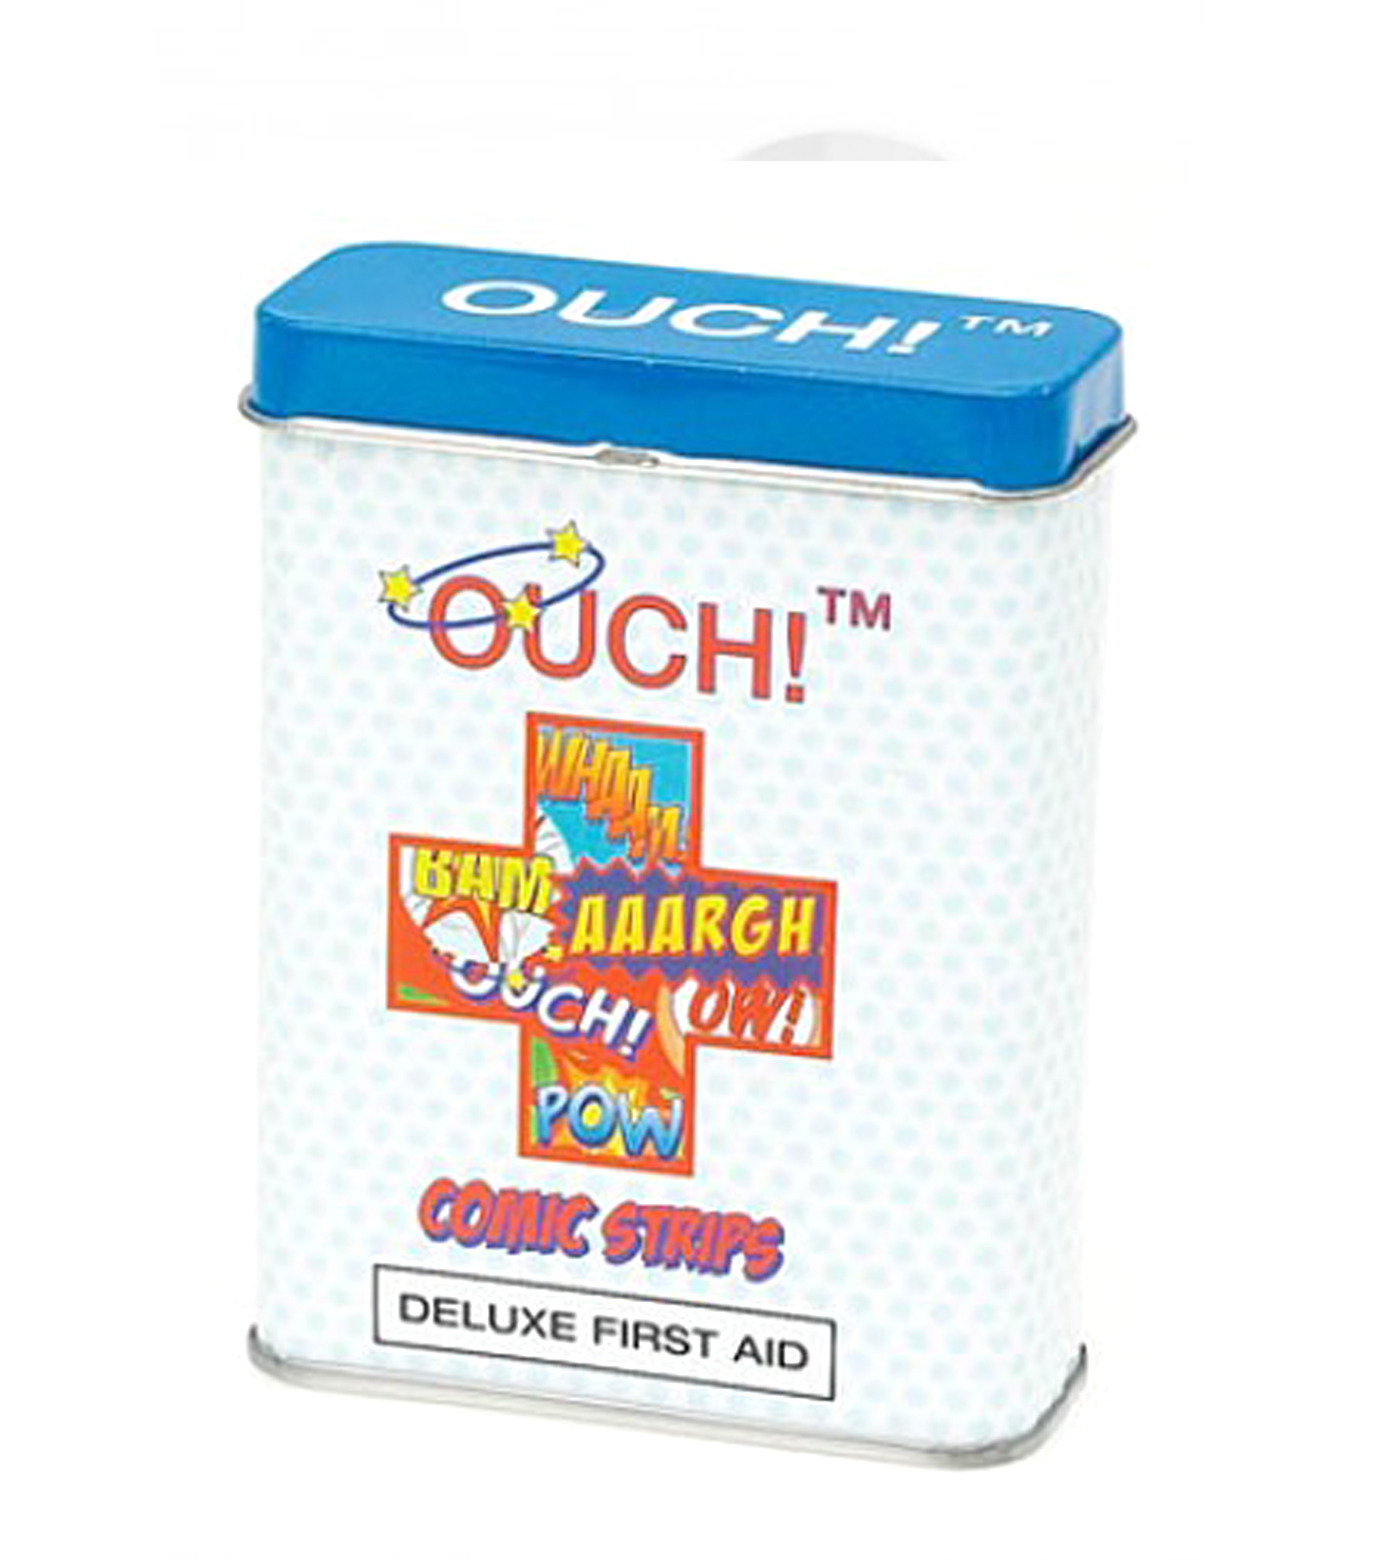 npw()のOUCH! Comic Strips-WHITE(OTHER-GOODS/OTHER-GOODS)-W4977-4 拡大詳細画像2